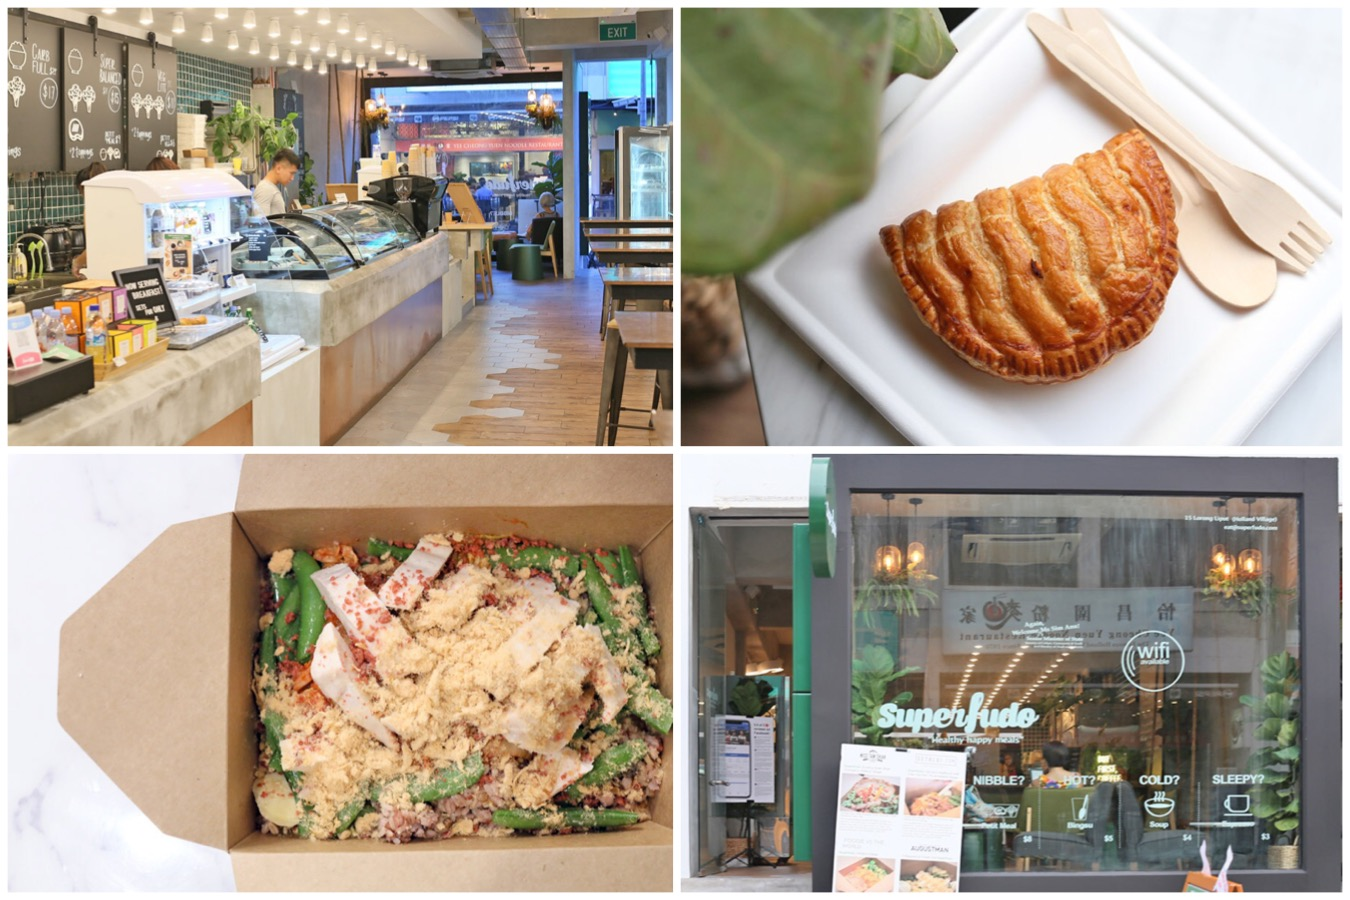 Superfudo - Your Kind Of Gym Food? Mix And Match Grain Bowl Shop At Holland Village